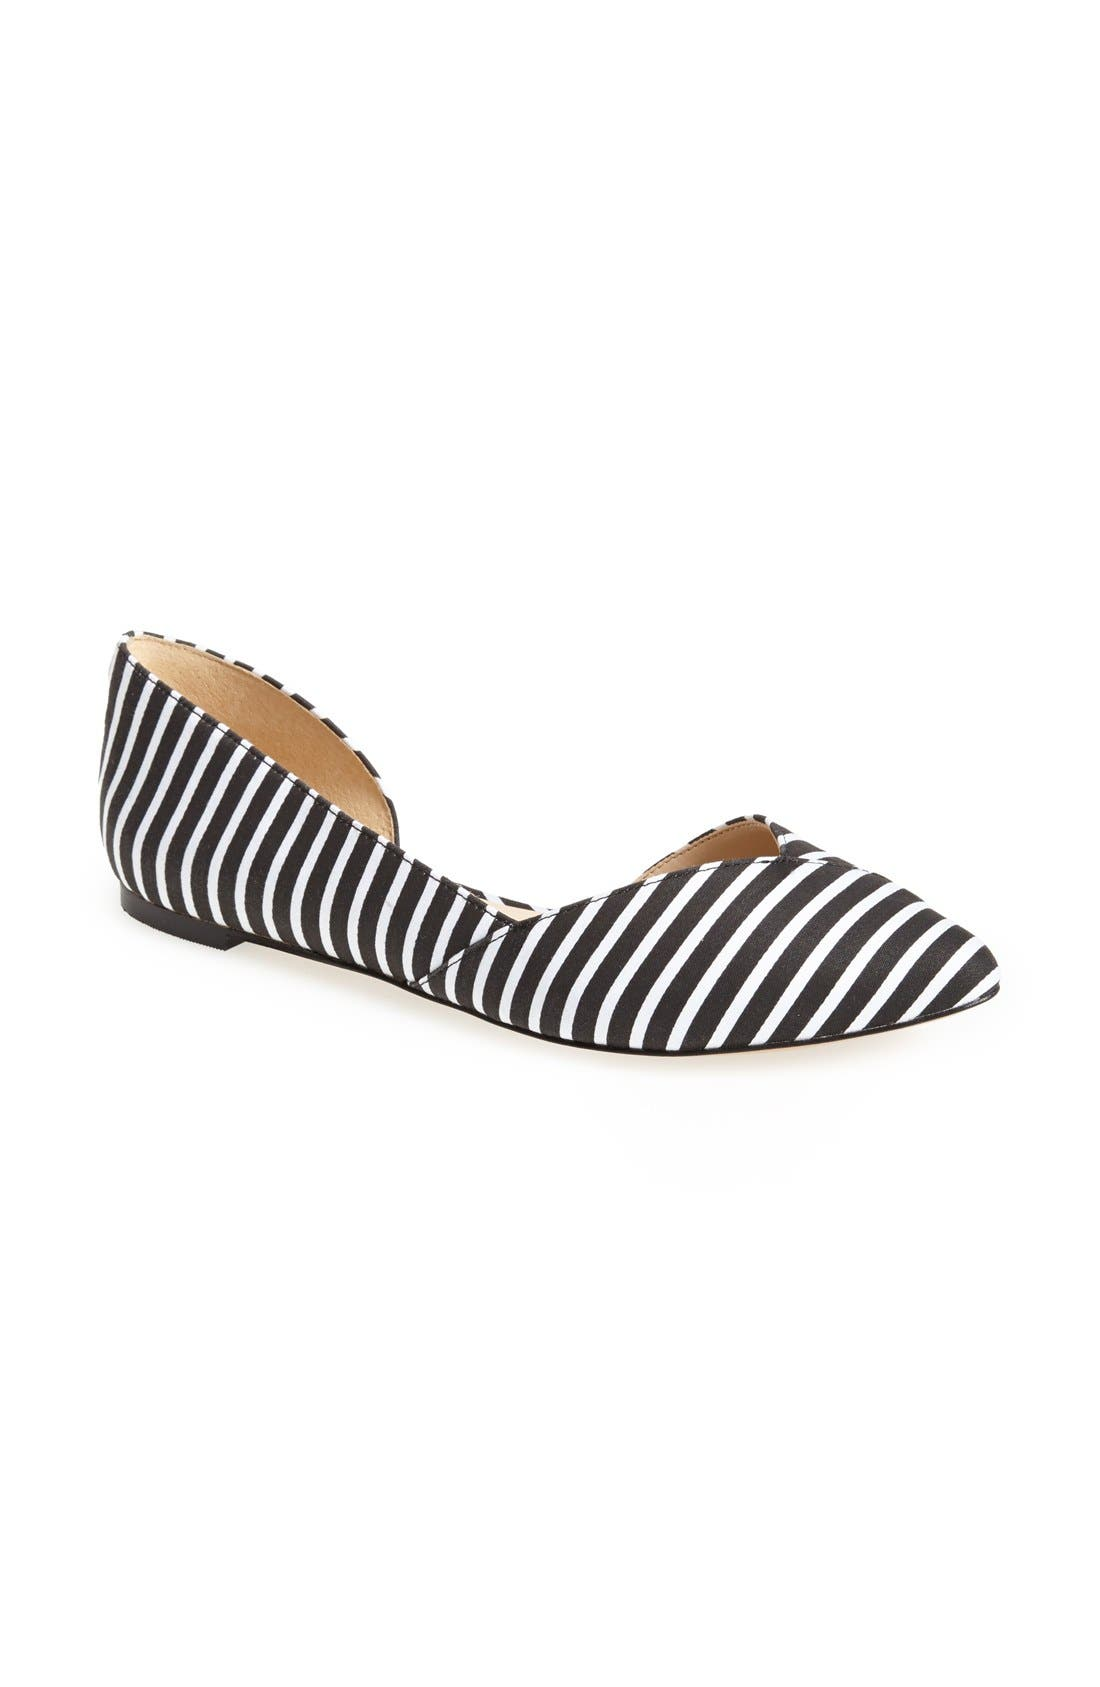 Alternate Image 1 Selected - Sole Society 'Danielle' Pointy Toe Flat (Women)